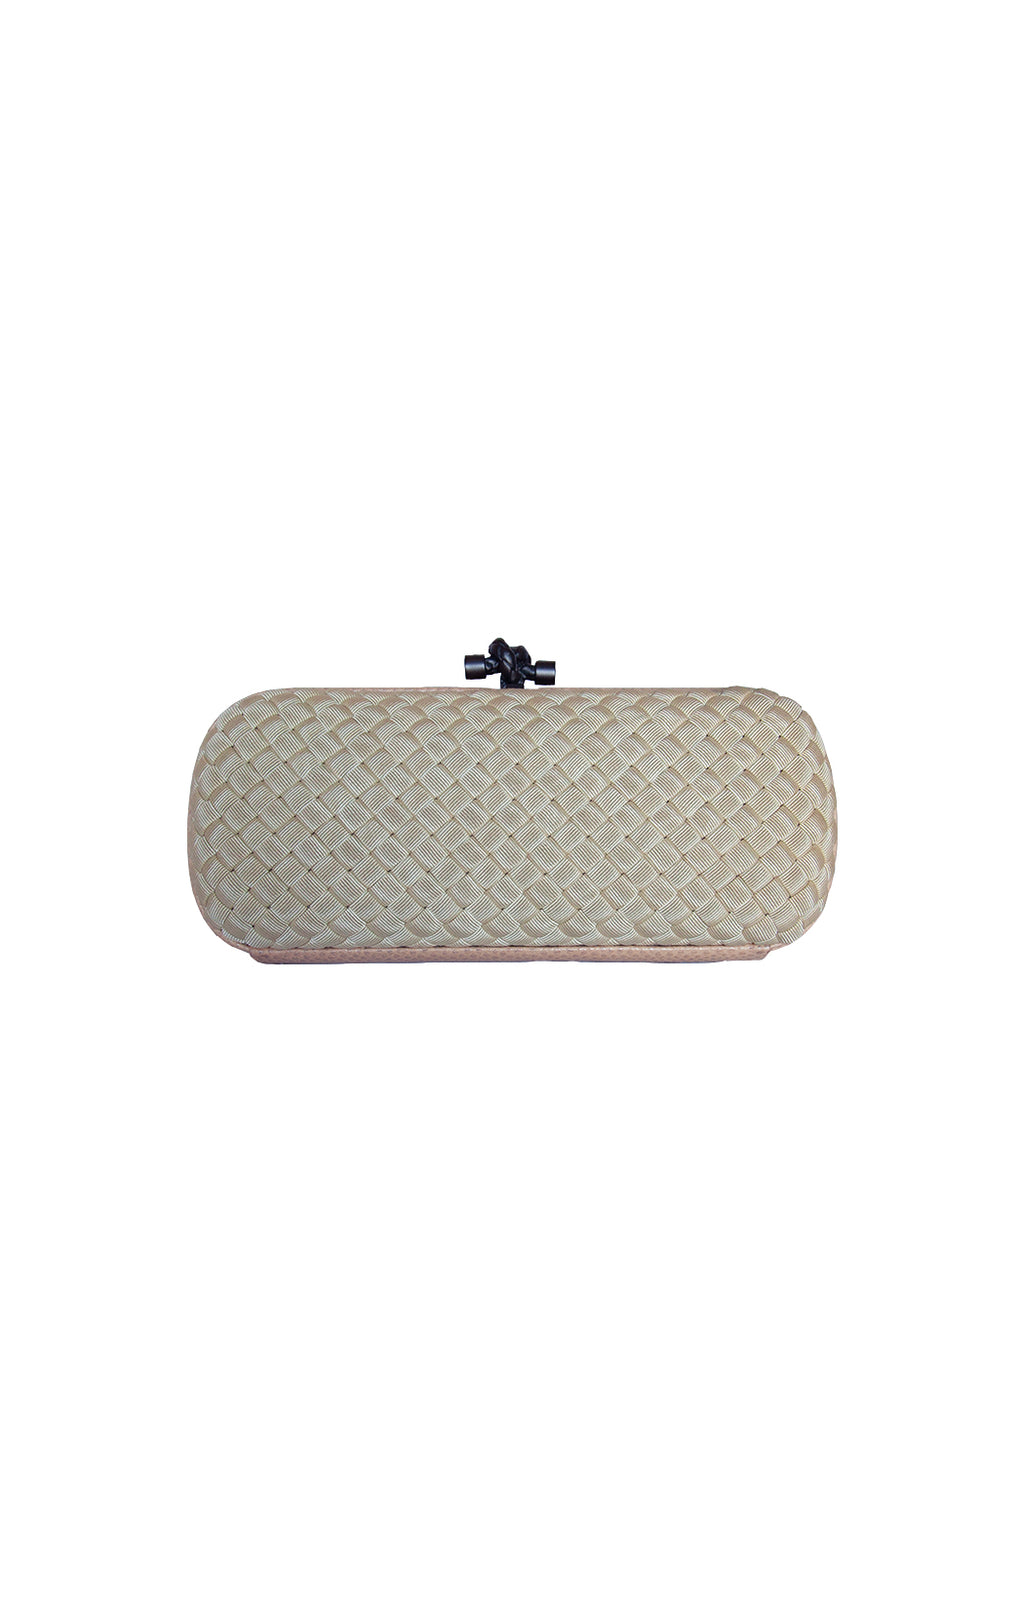 View of BOTTEGA VENETA Clutch Size: 9.5 x 4 x 2.5 in.